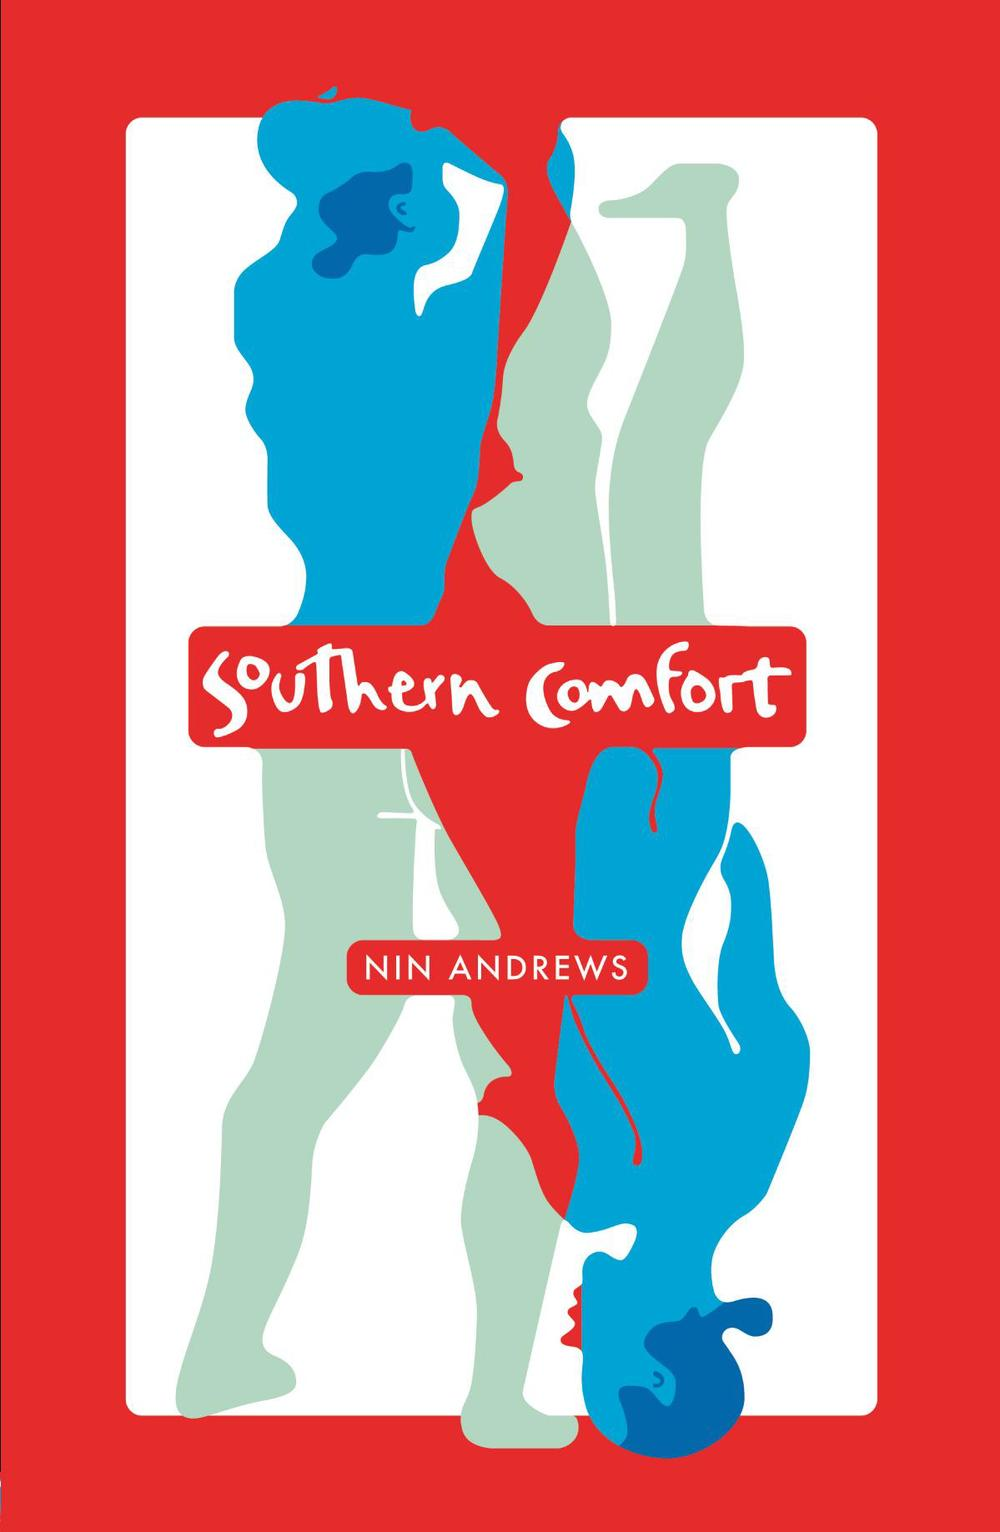 SouthernComfort_cover.jpg